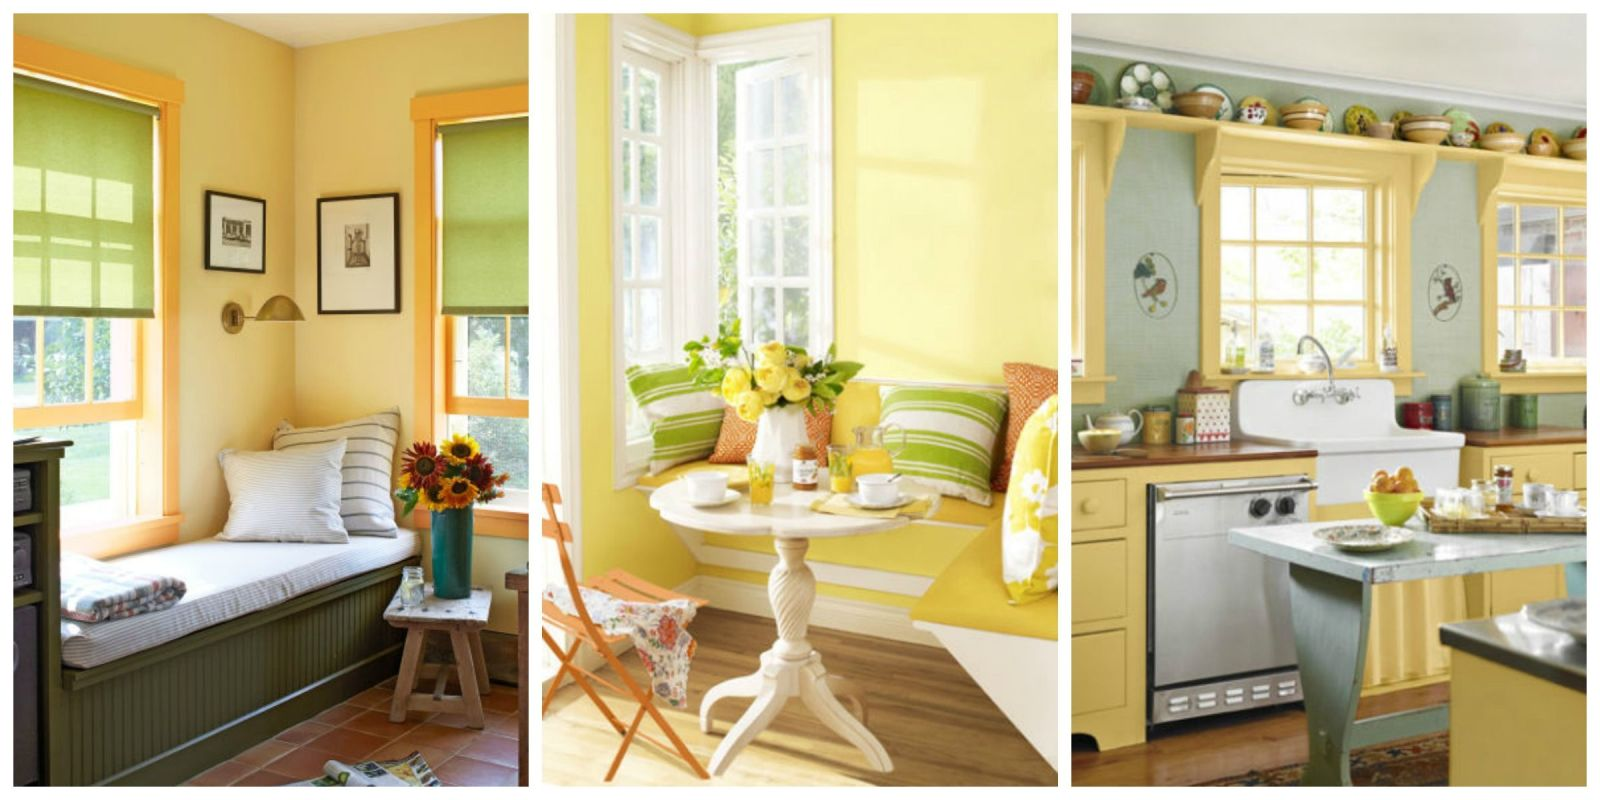 How To Decorate A Yellow Bedroom Yellow Decor Decorating With Yellow